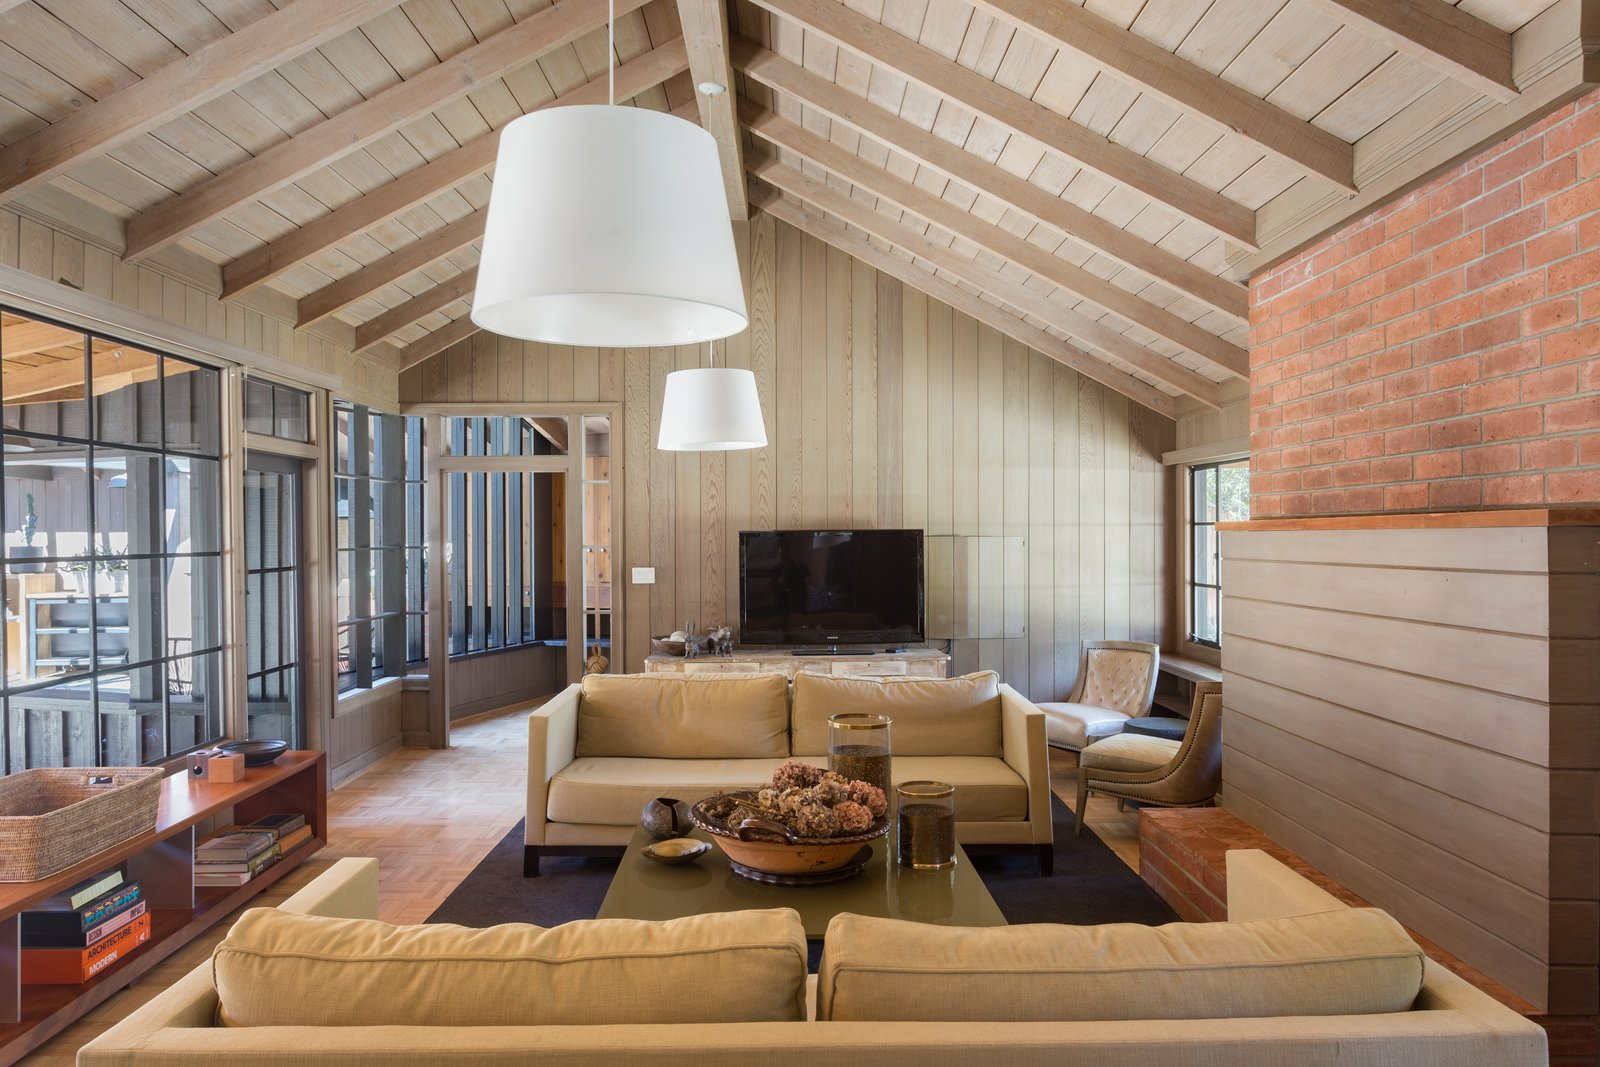 With original steel-framed windows, beamed ceilings, warm wood-paneled walls, and a gracious floor plan it makes for a wonderful entertaining space.